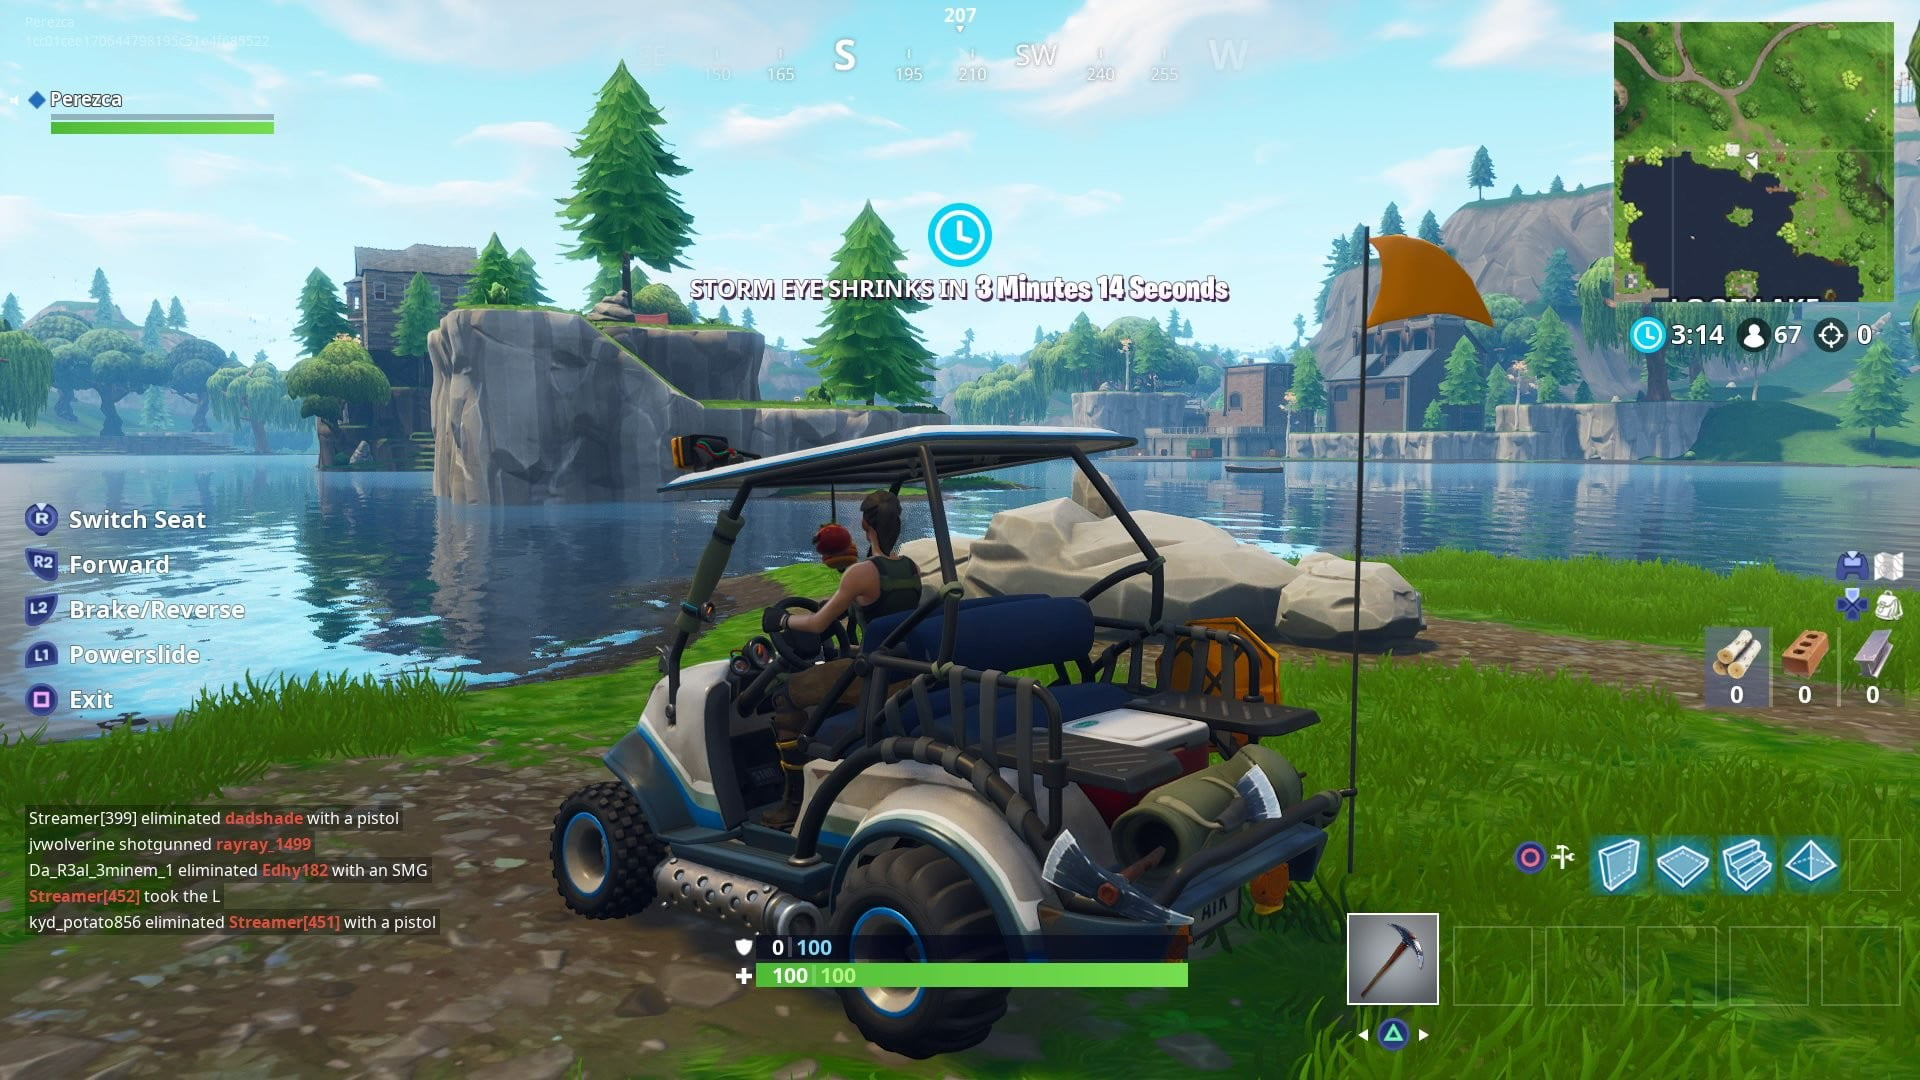 Fortnite 'Visit Named Locations in a Single Match' Week 7 ... on golf accessories, golf card, golf players, golf games, golf words, golf machine, golf buggy, golf cartoons, golf hitting nets, golf tools, golf trolley, golf handicap,